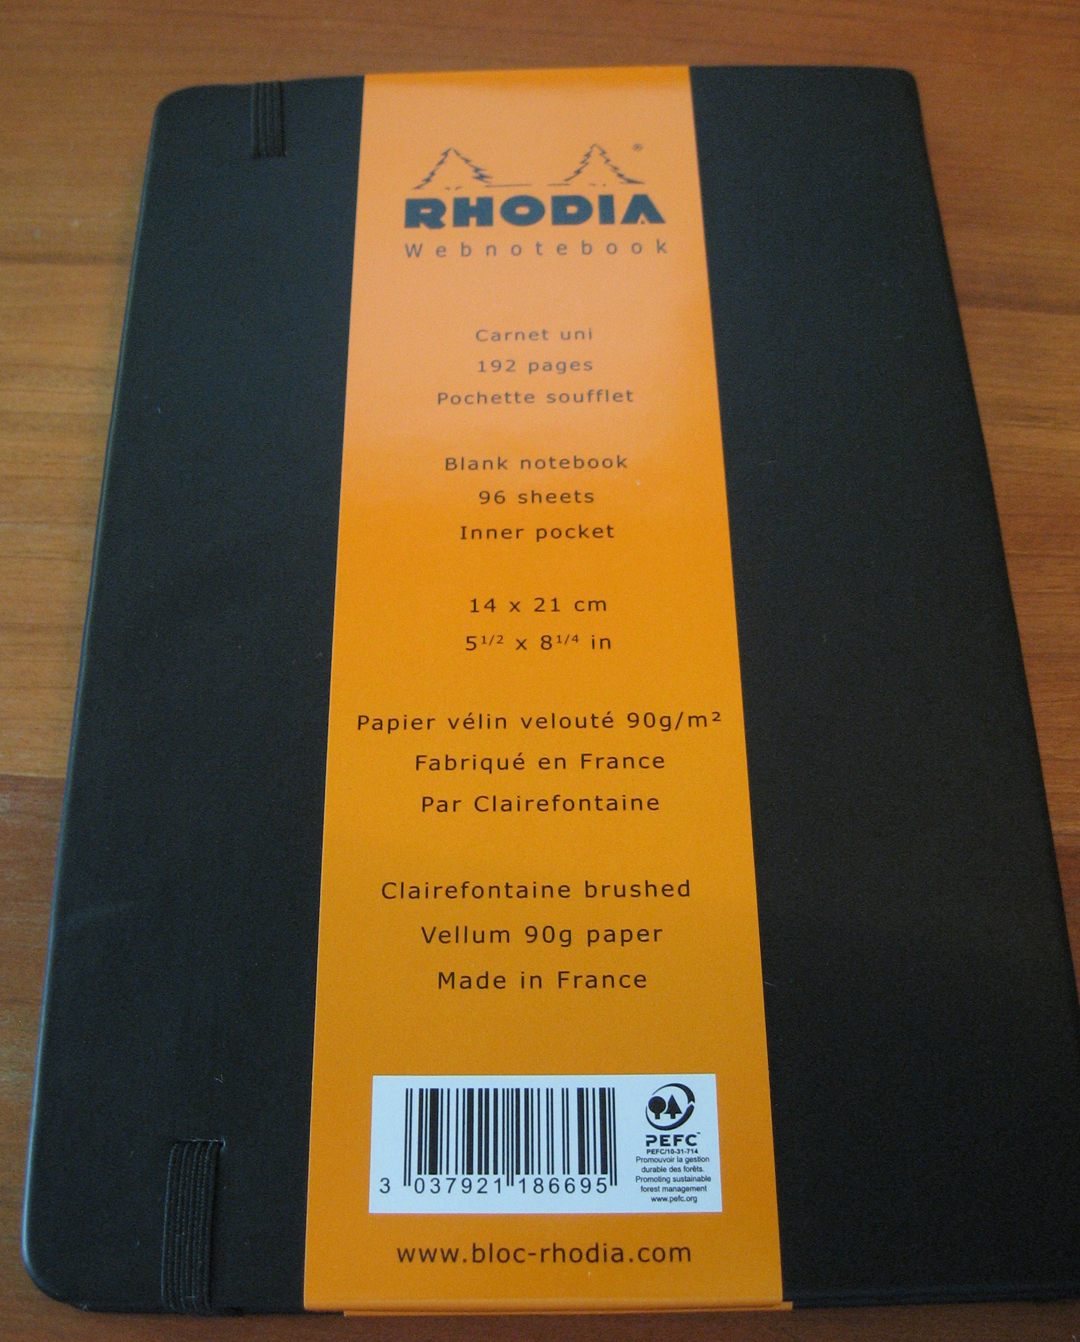 Perhaps More Than A Review Rhodia Webnotebook Ver 3 0 Peaceable